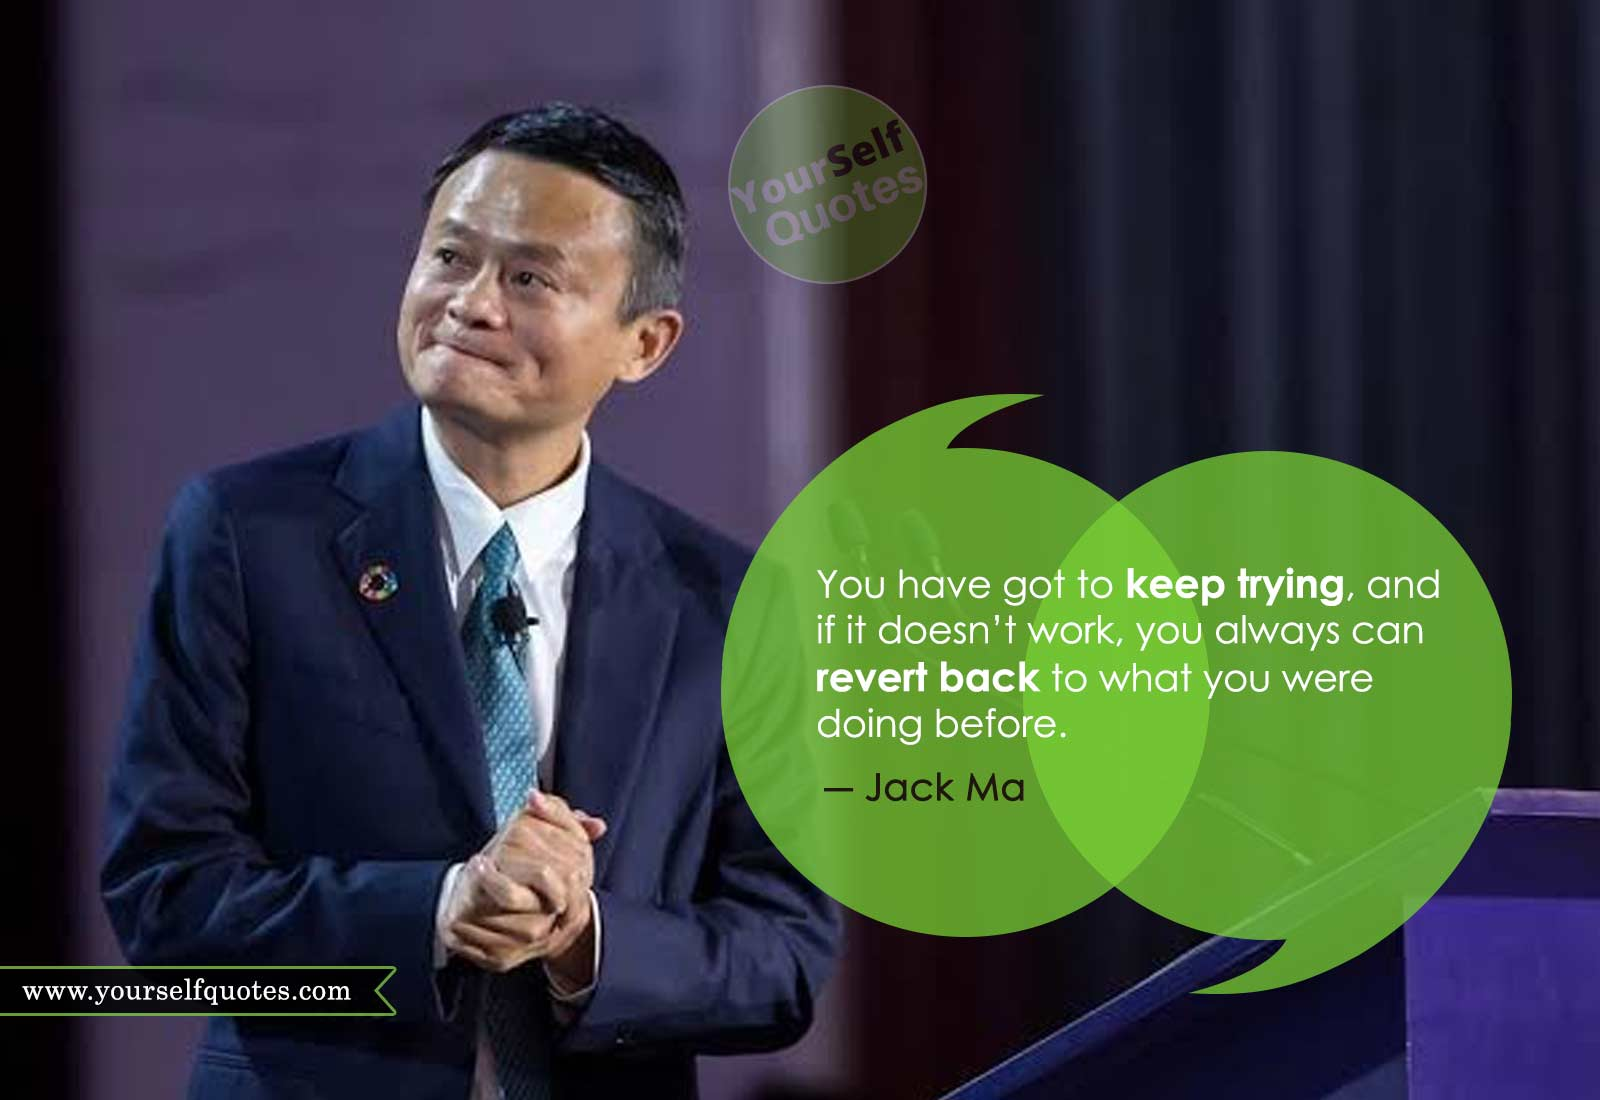 Jack Ma Quotes on Work